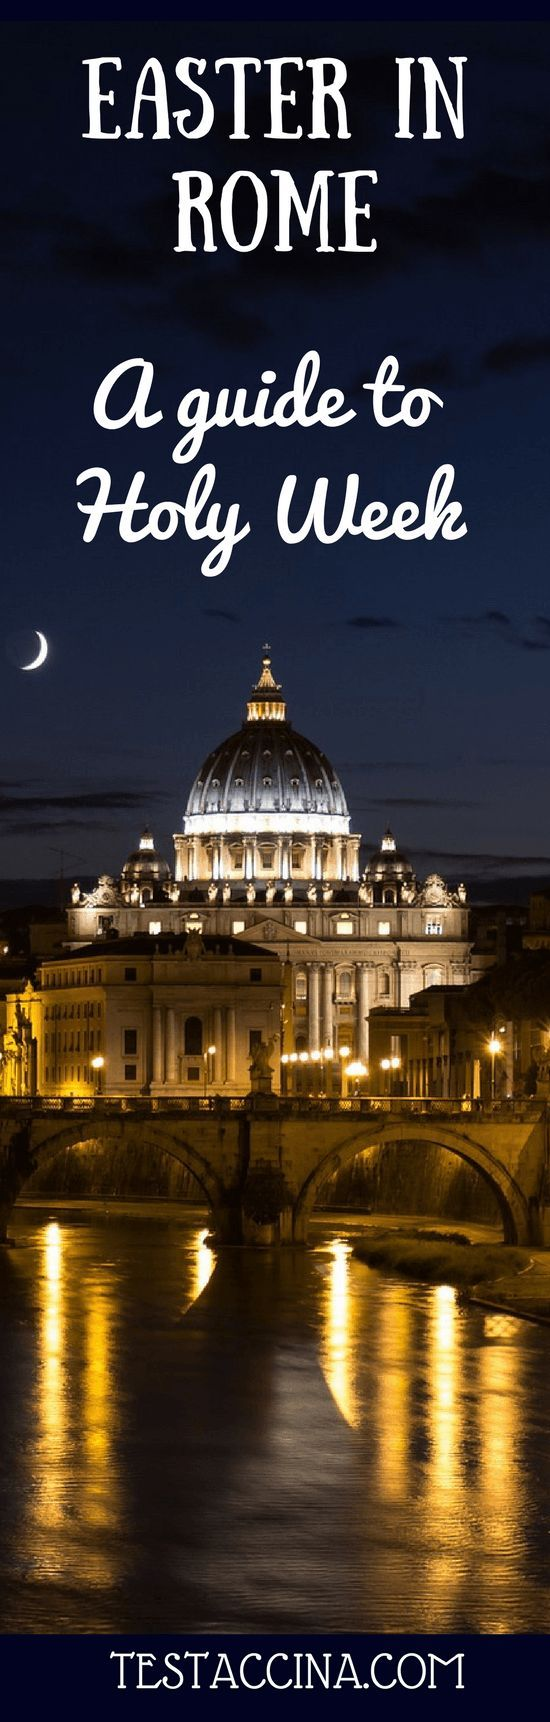 Easter in Rome 2017: a guide to Holy Week 2017 in Rome, including Maundy Thursday, Good Friday, Easter Saturday, Easter Sunday and Easter Monday.